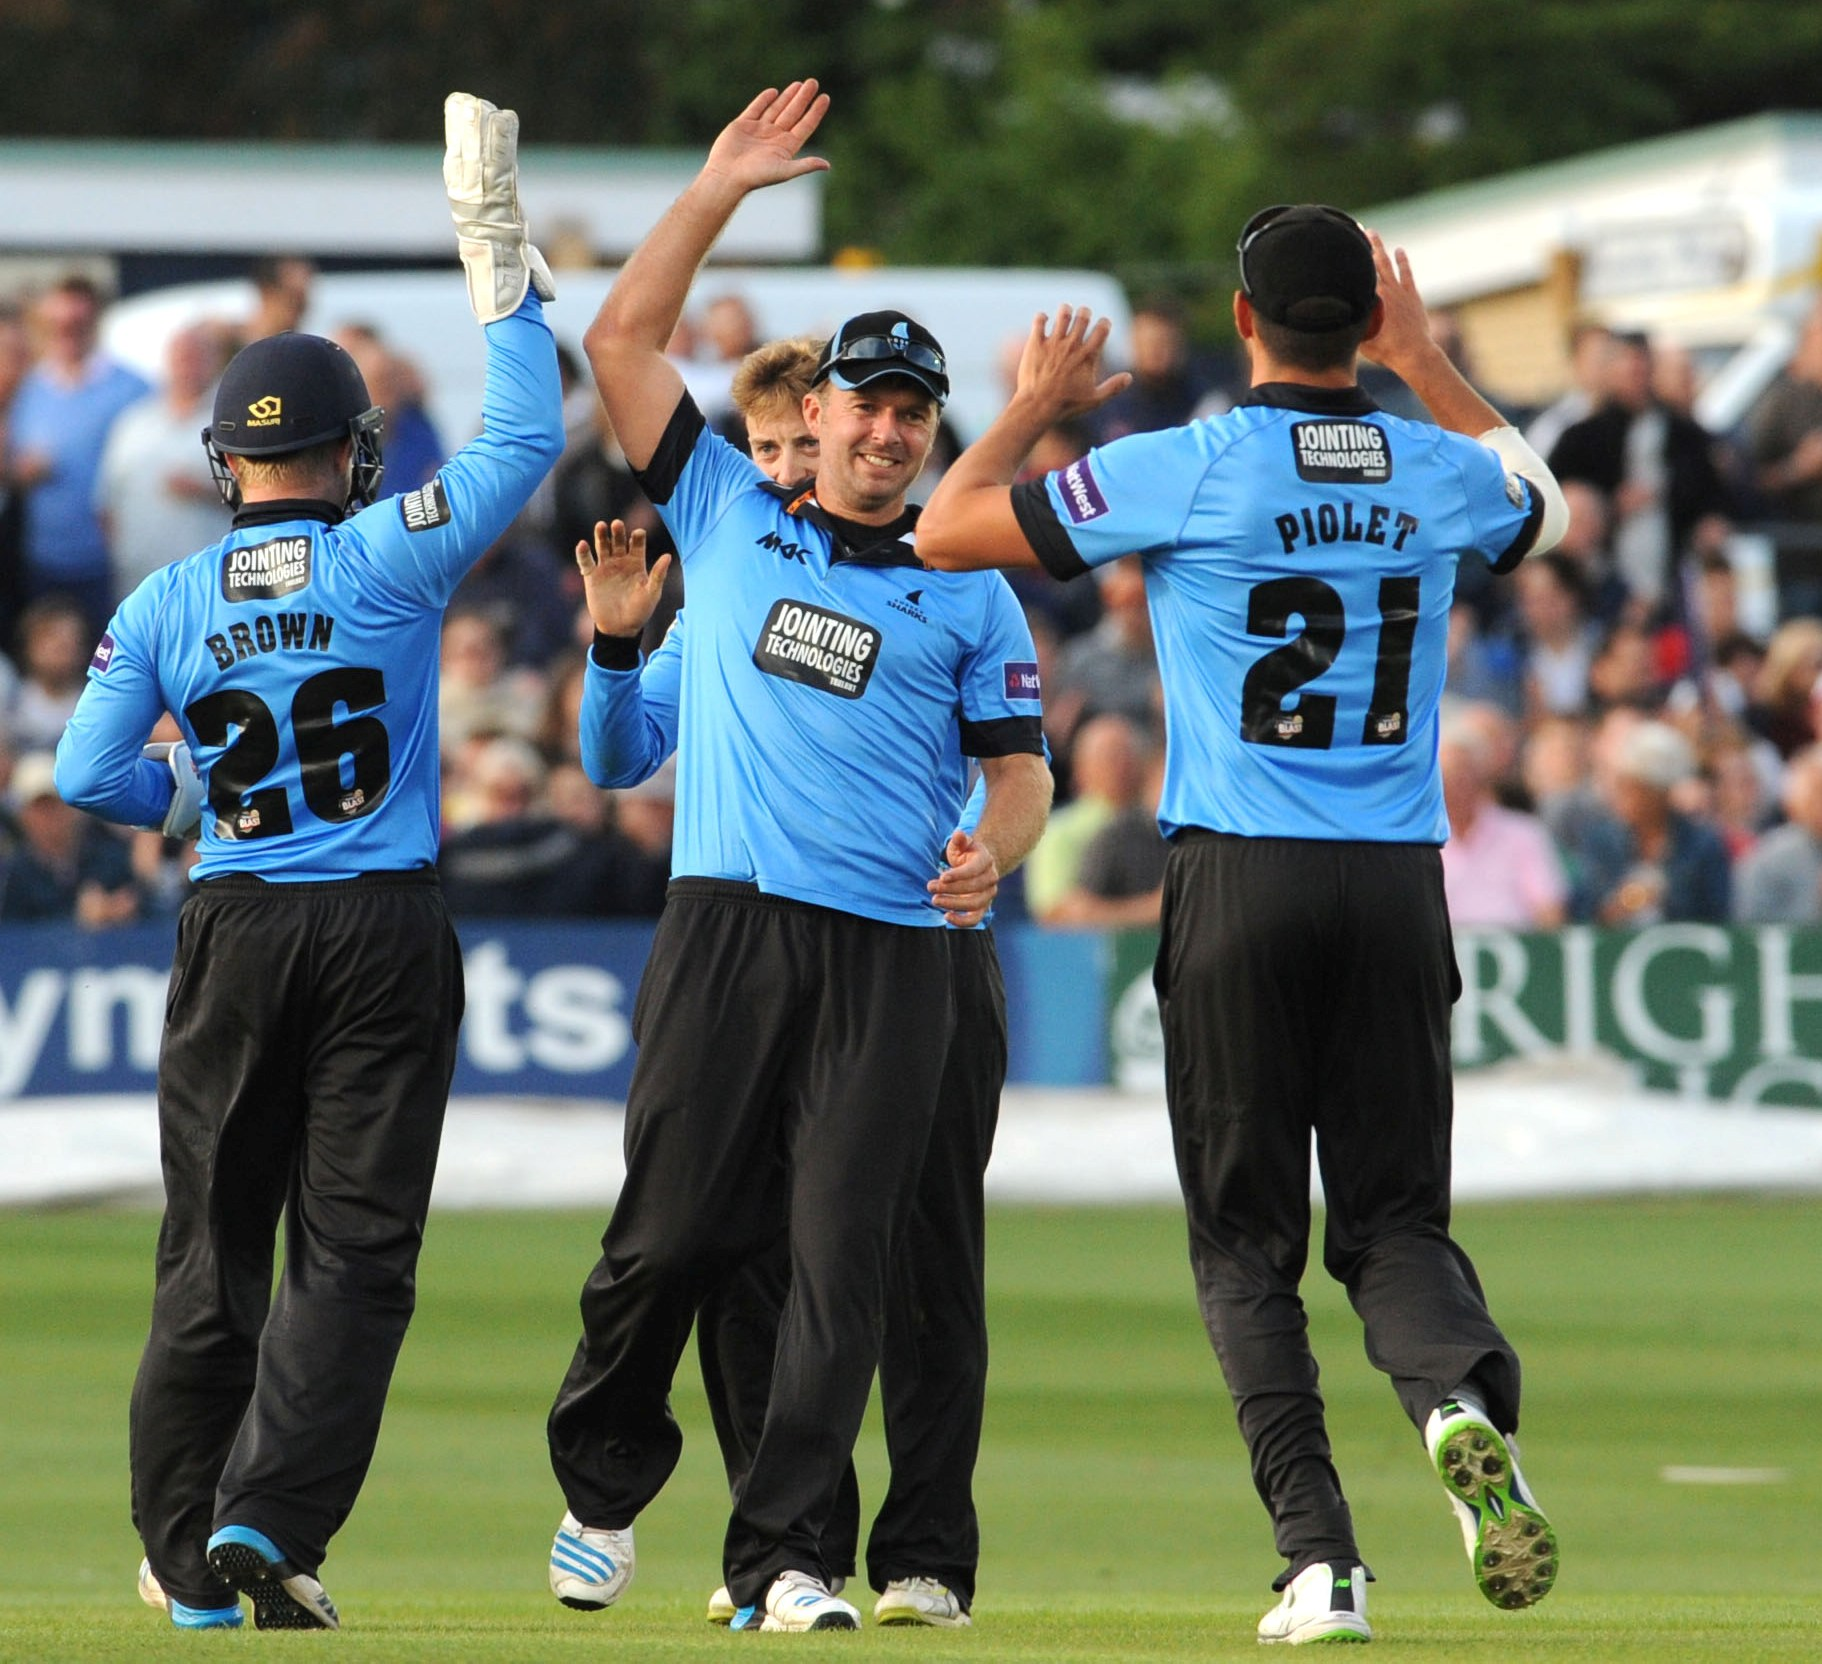 Sussex celebrate a wicket tonight. Pic by Simon Dack